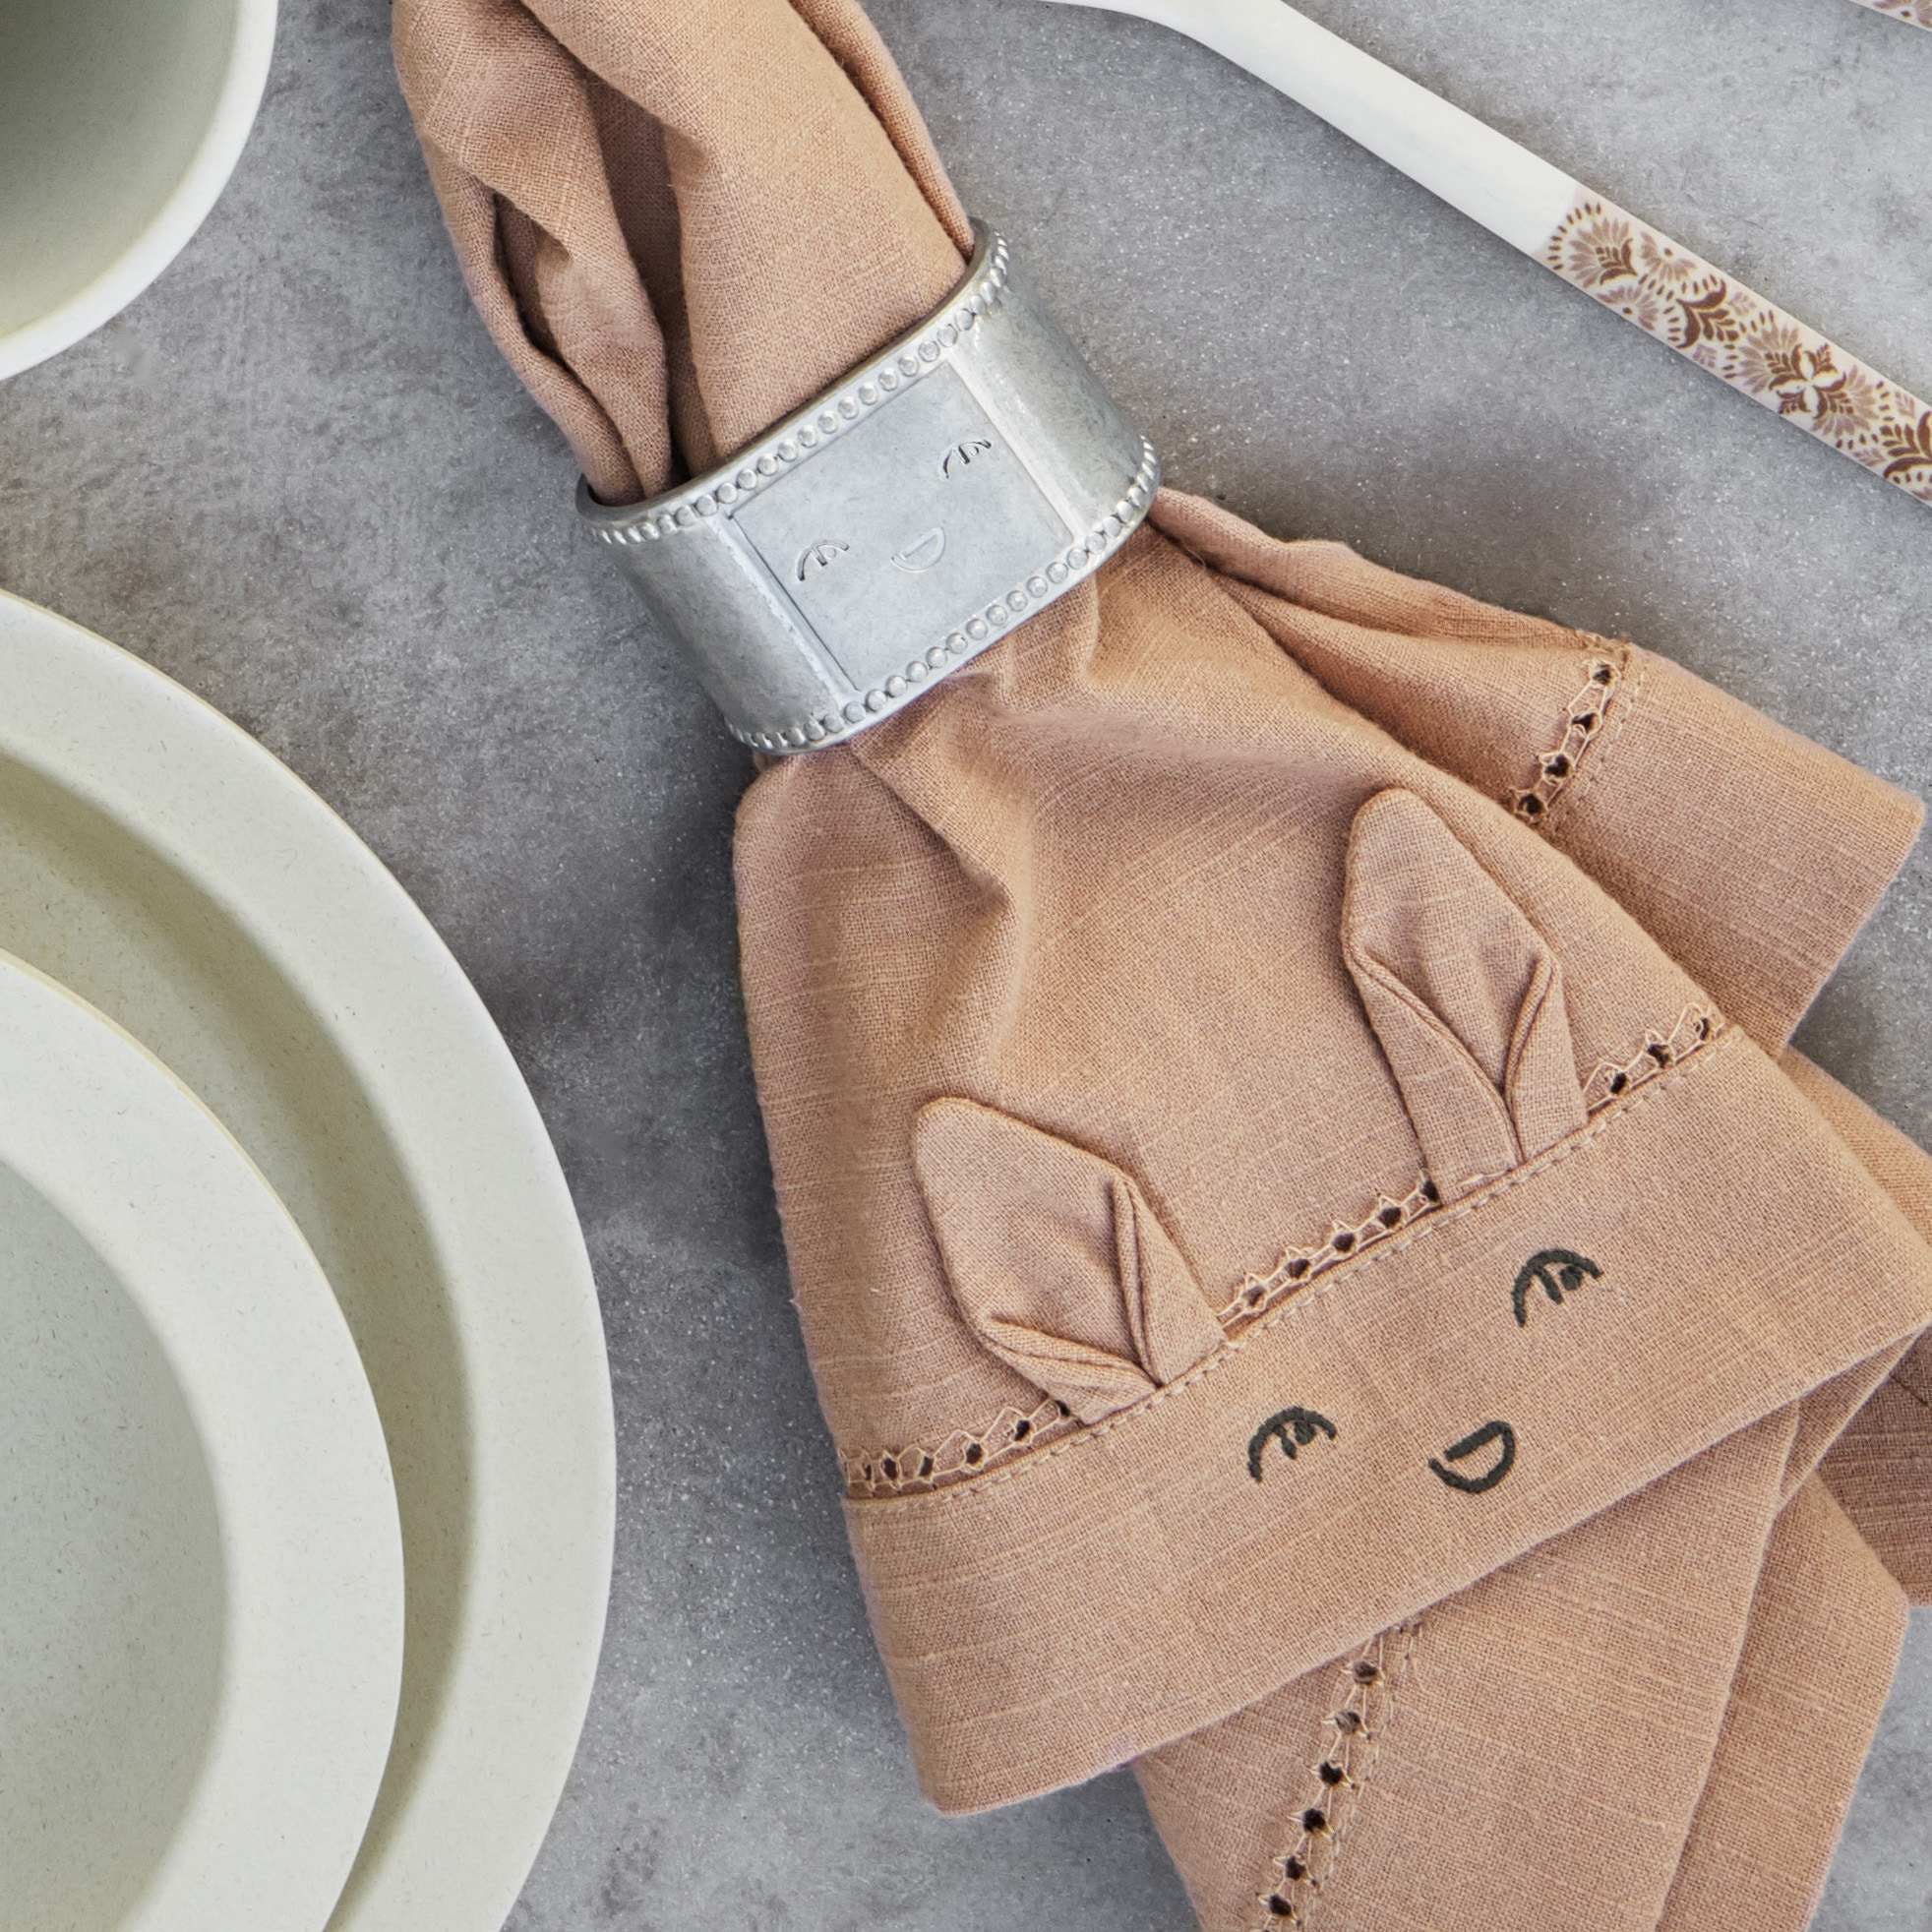 Baby Napkins 2pcs Faded Rose Burned Clay Elodie Details SS20 Lifestyle 60285101150NA 1 Web